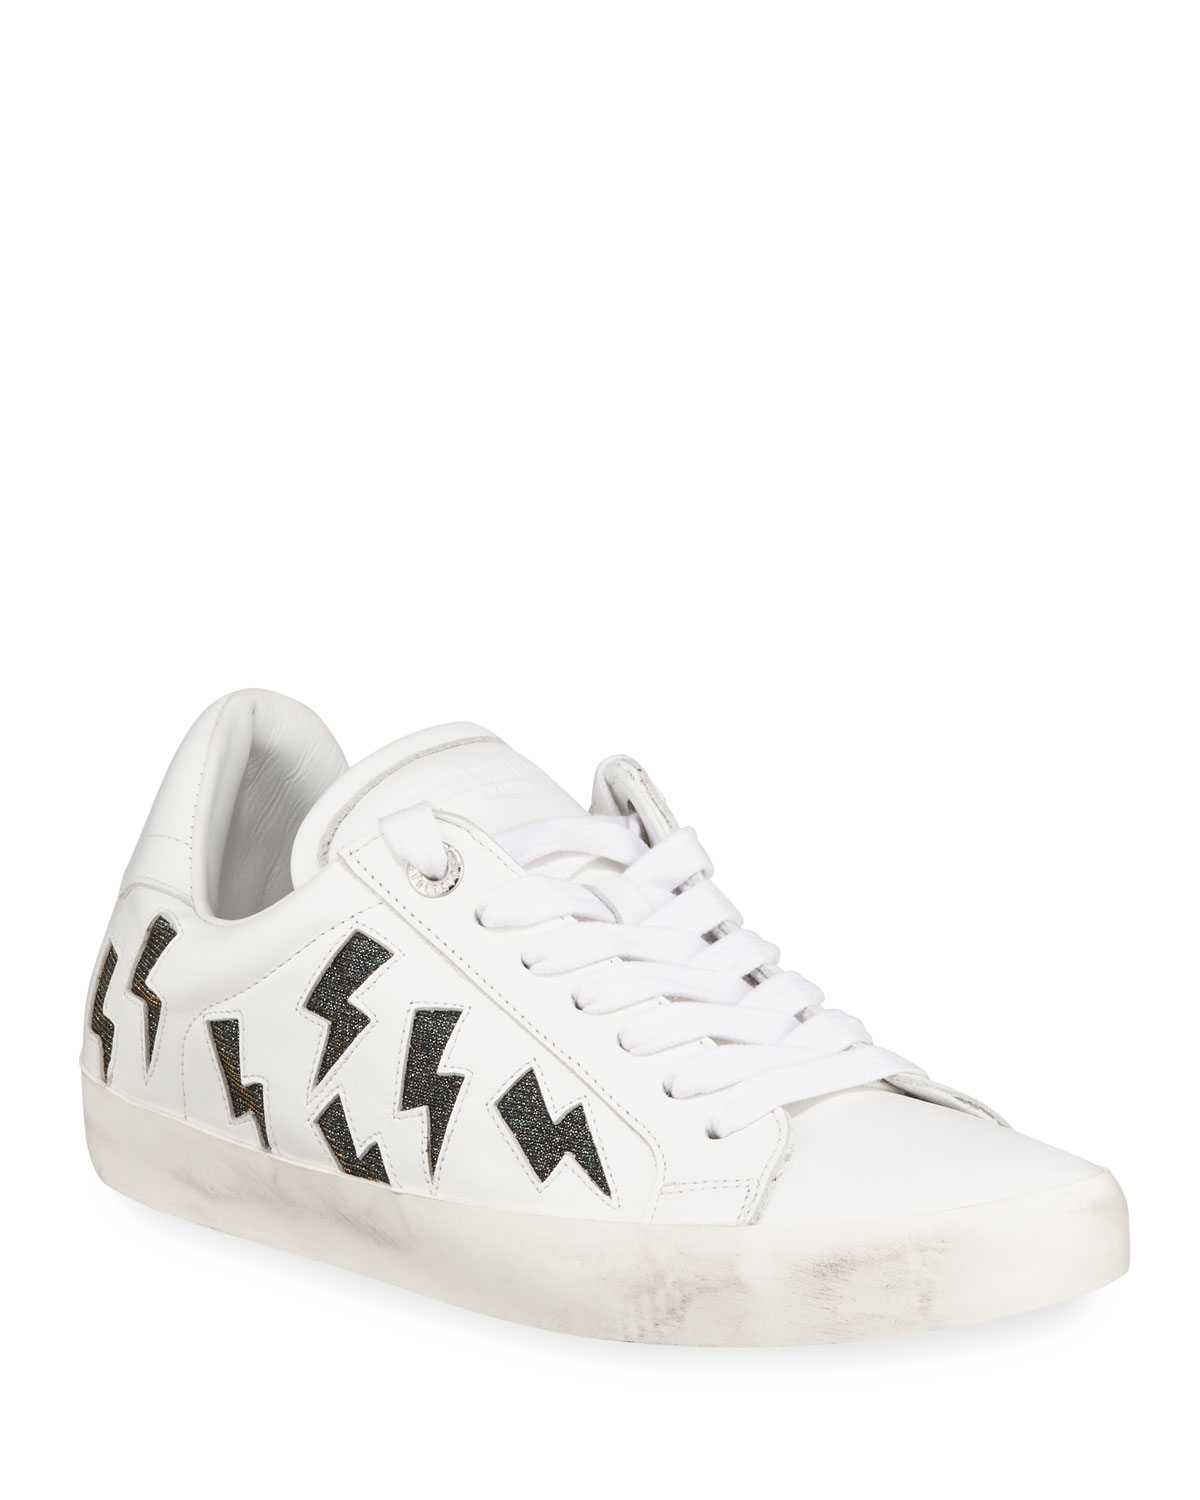 Flash Low-Top Leather Lightning Sneakers